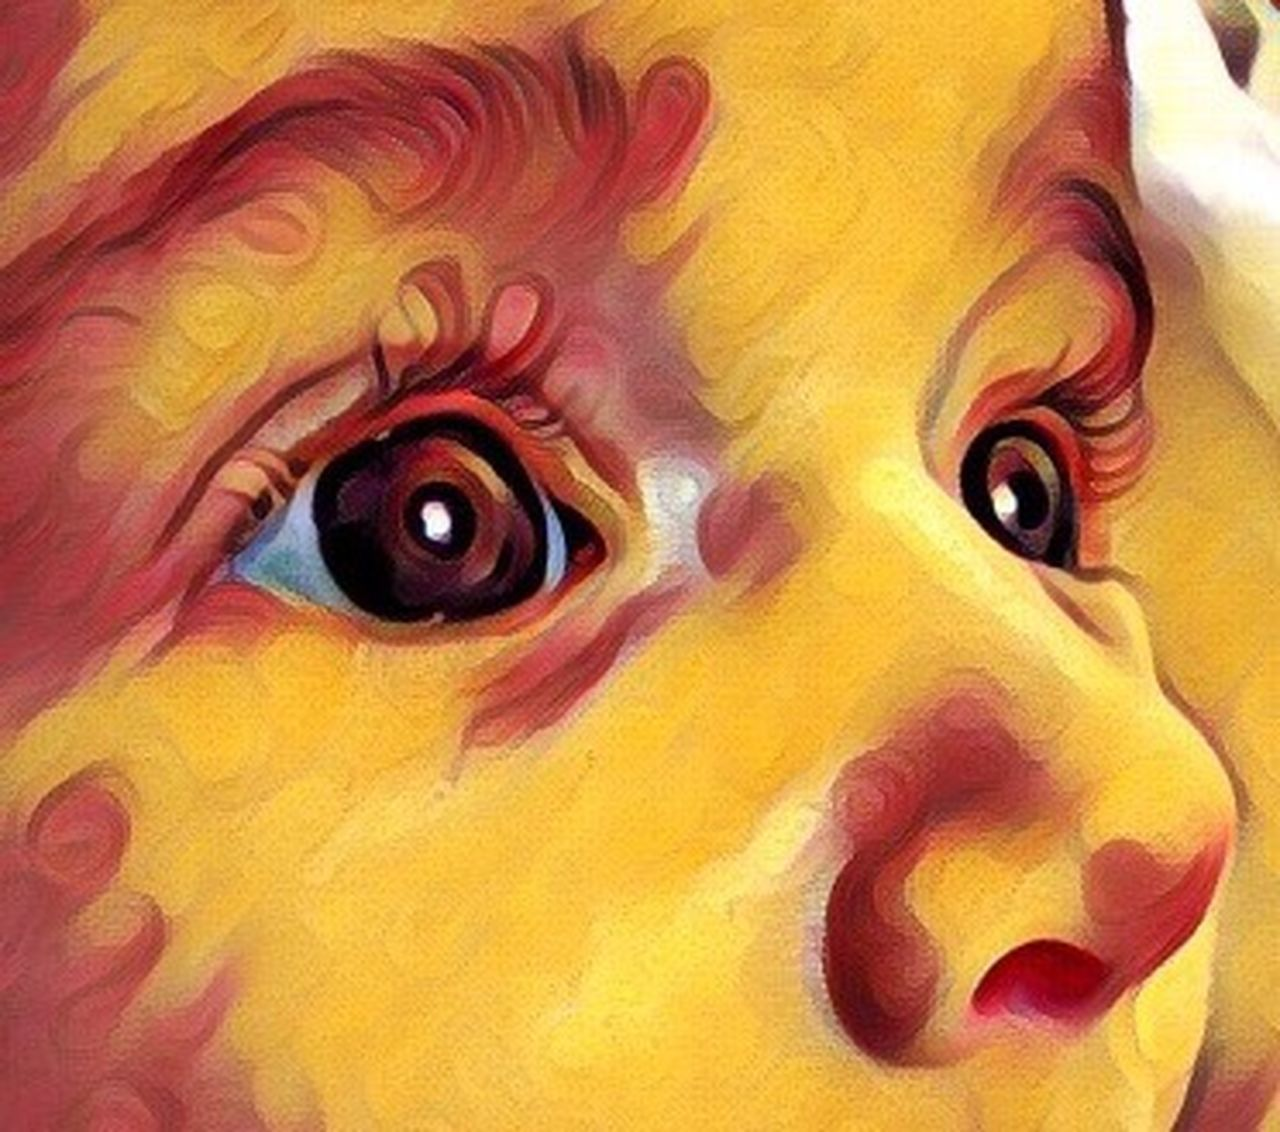 Babygirl Baby Eyes Multi Colored Yellow Close-up Human Eye Eyelash Watercolor Painting ArtWork Macro Painted Image Eyebrow People Bebe Ojos Bonitos  Arte Colors Colorful Portrait Cejas Bodyart Body Part Bodypaint